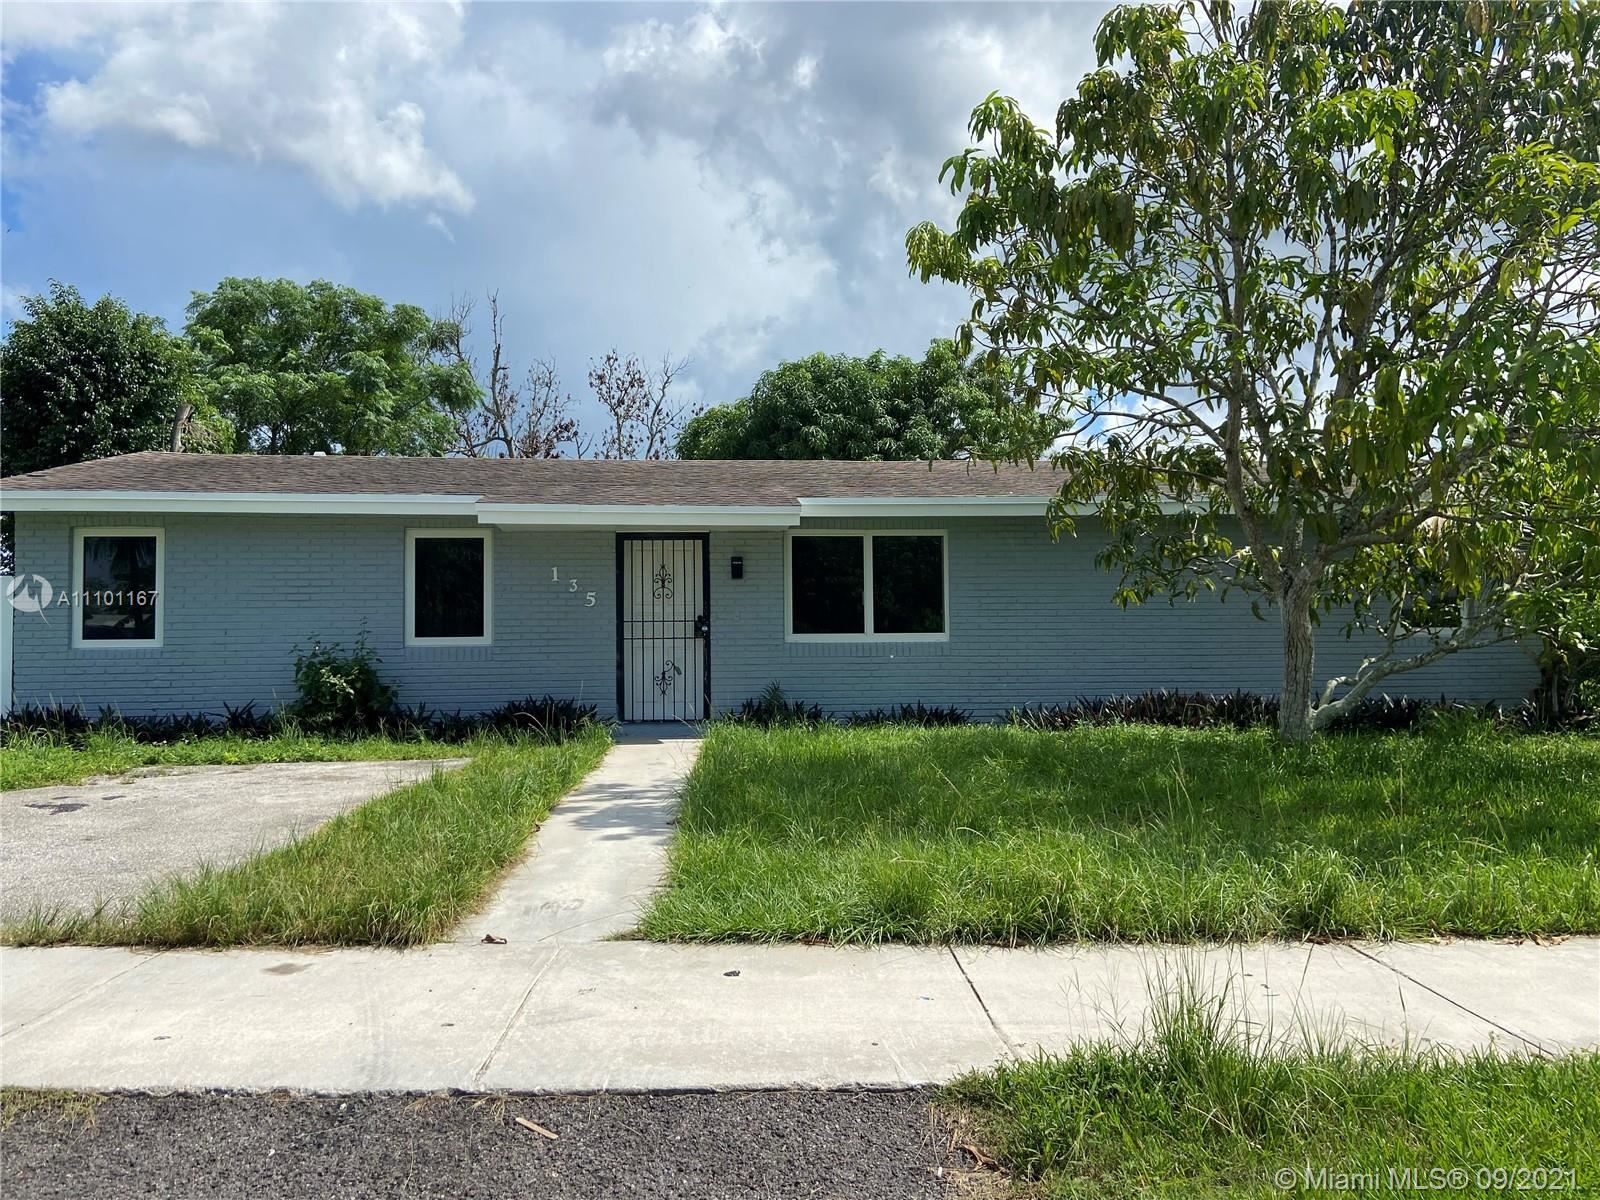 Photo of 135 SW 17th Ave, Homestead, FL 33030 (MLS # A11101167)